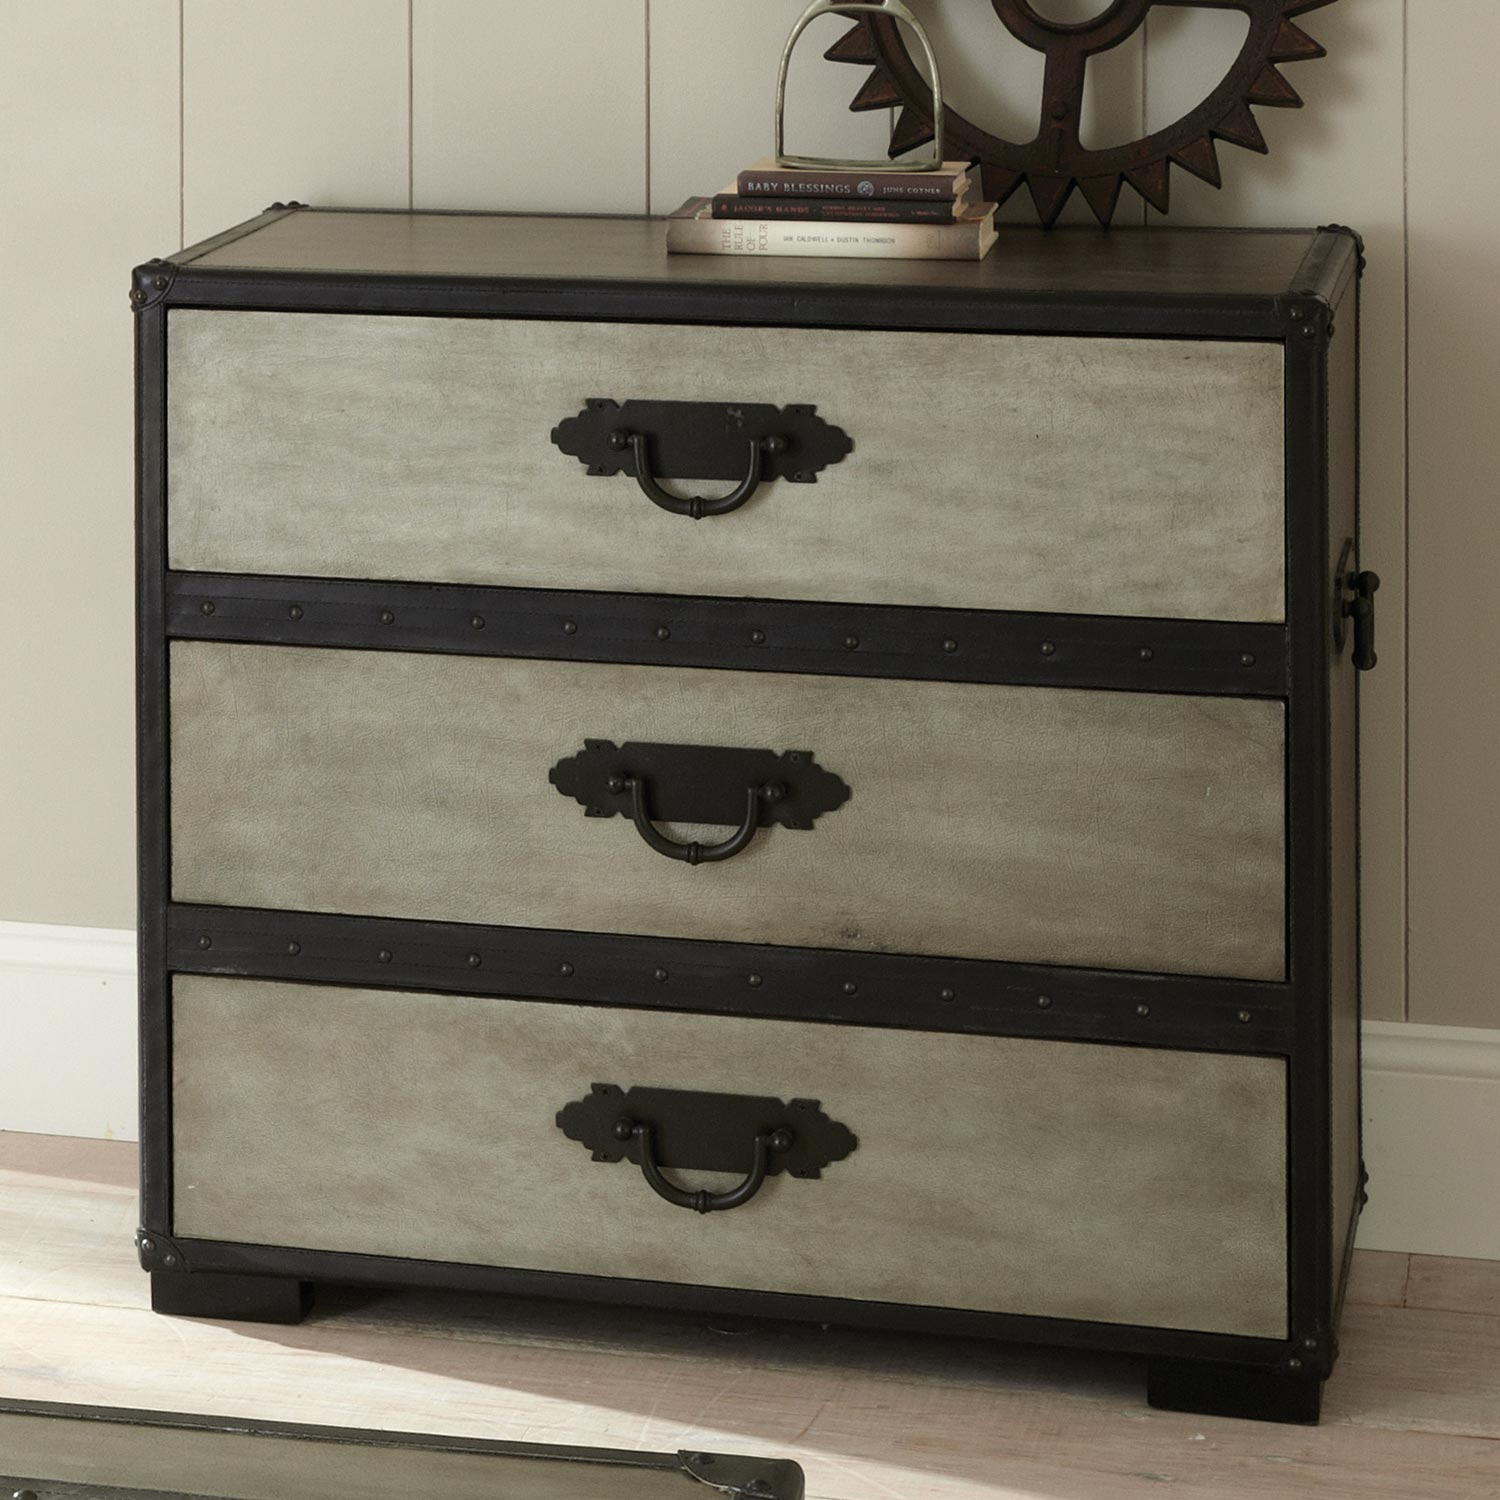 Rowan 3-Drawer Chest - Leather Accents, Gray - SSC-RW300CH